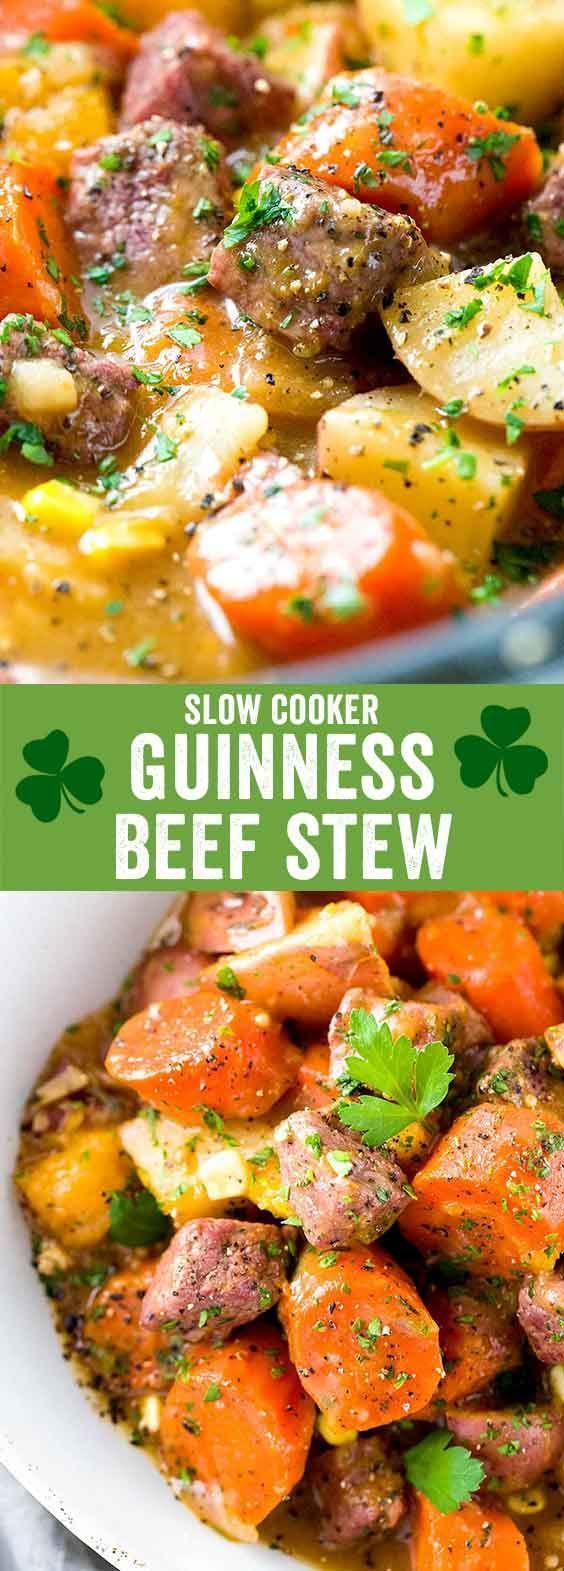 Slow Cooker Guinness Beef Stew - A hearty Irish beef stew recipe with tender pieces of corned beef and root vegetables infused with beer and blend of spices. via @foodiegavin